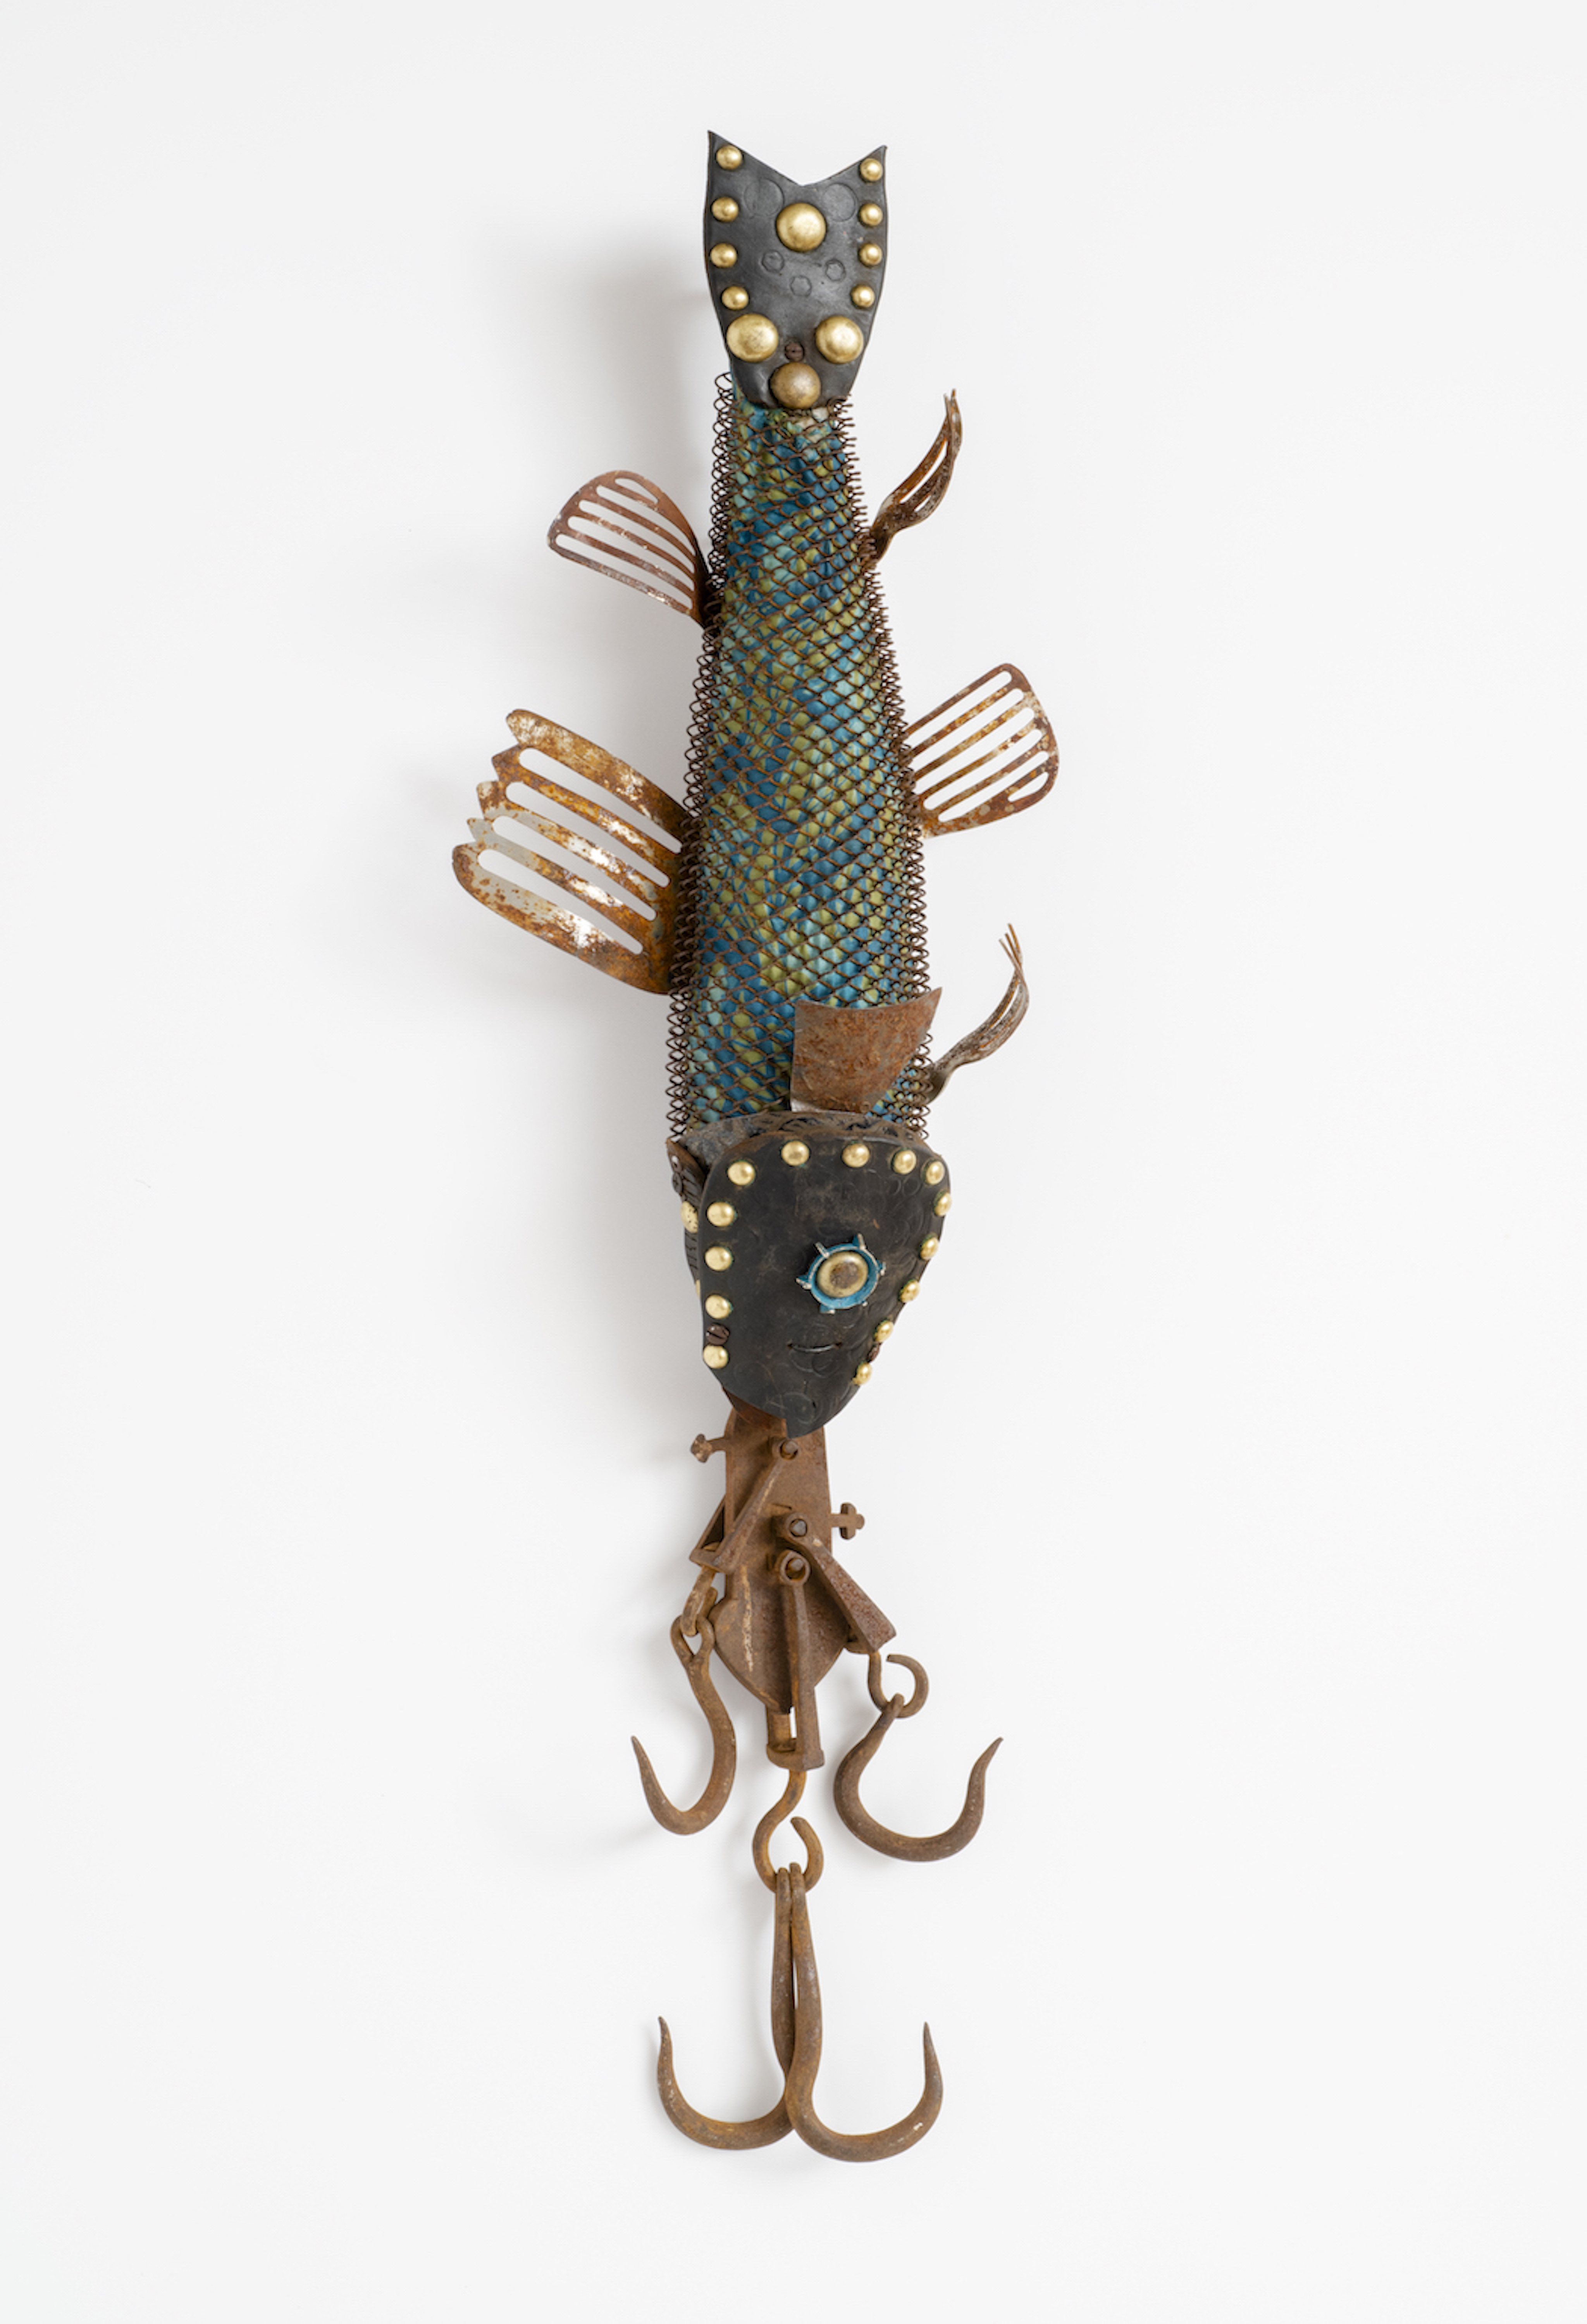 found objects, wall sculpture, fish, environmental, mixed media